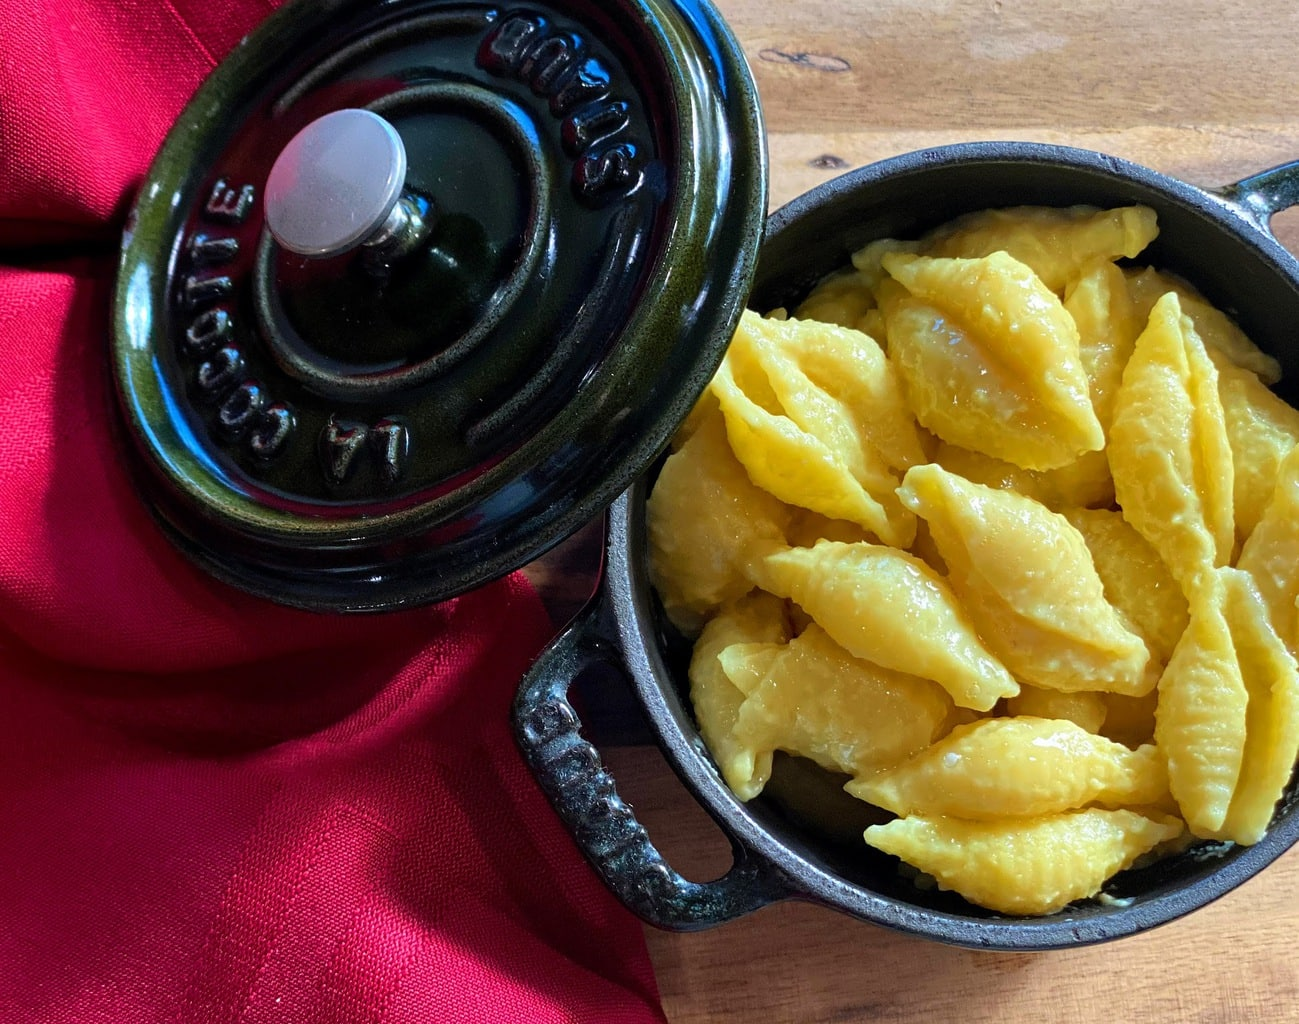 vegan mac and cheese in a mini cocotte with red napkin